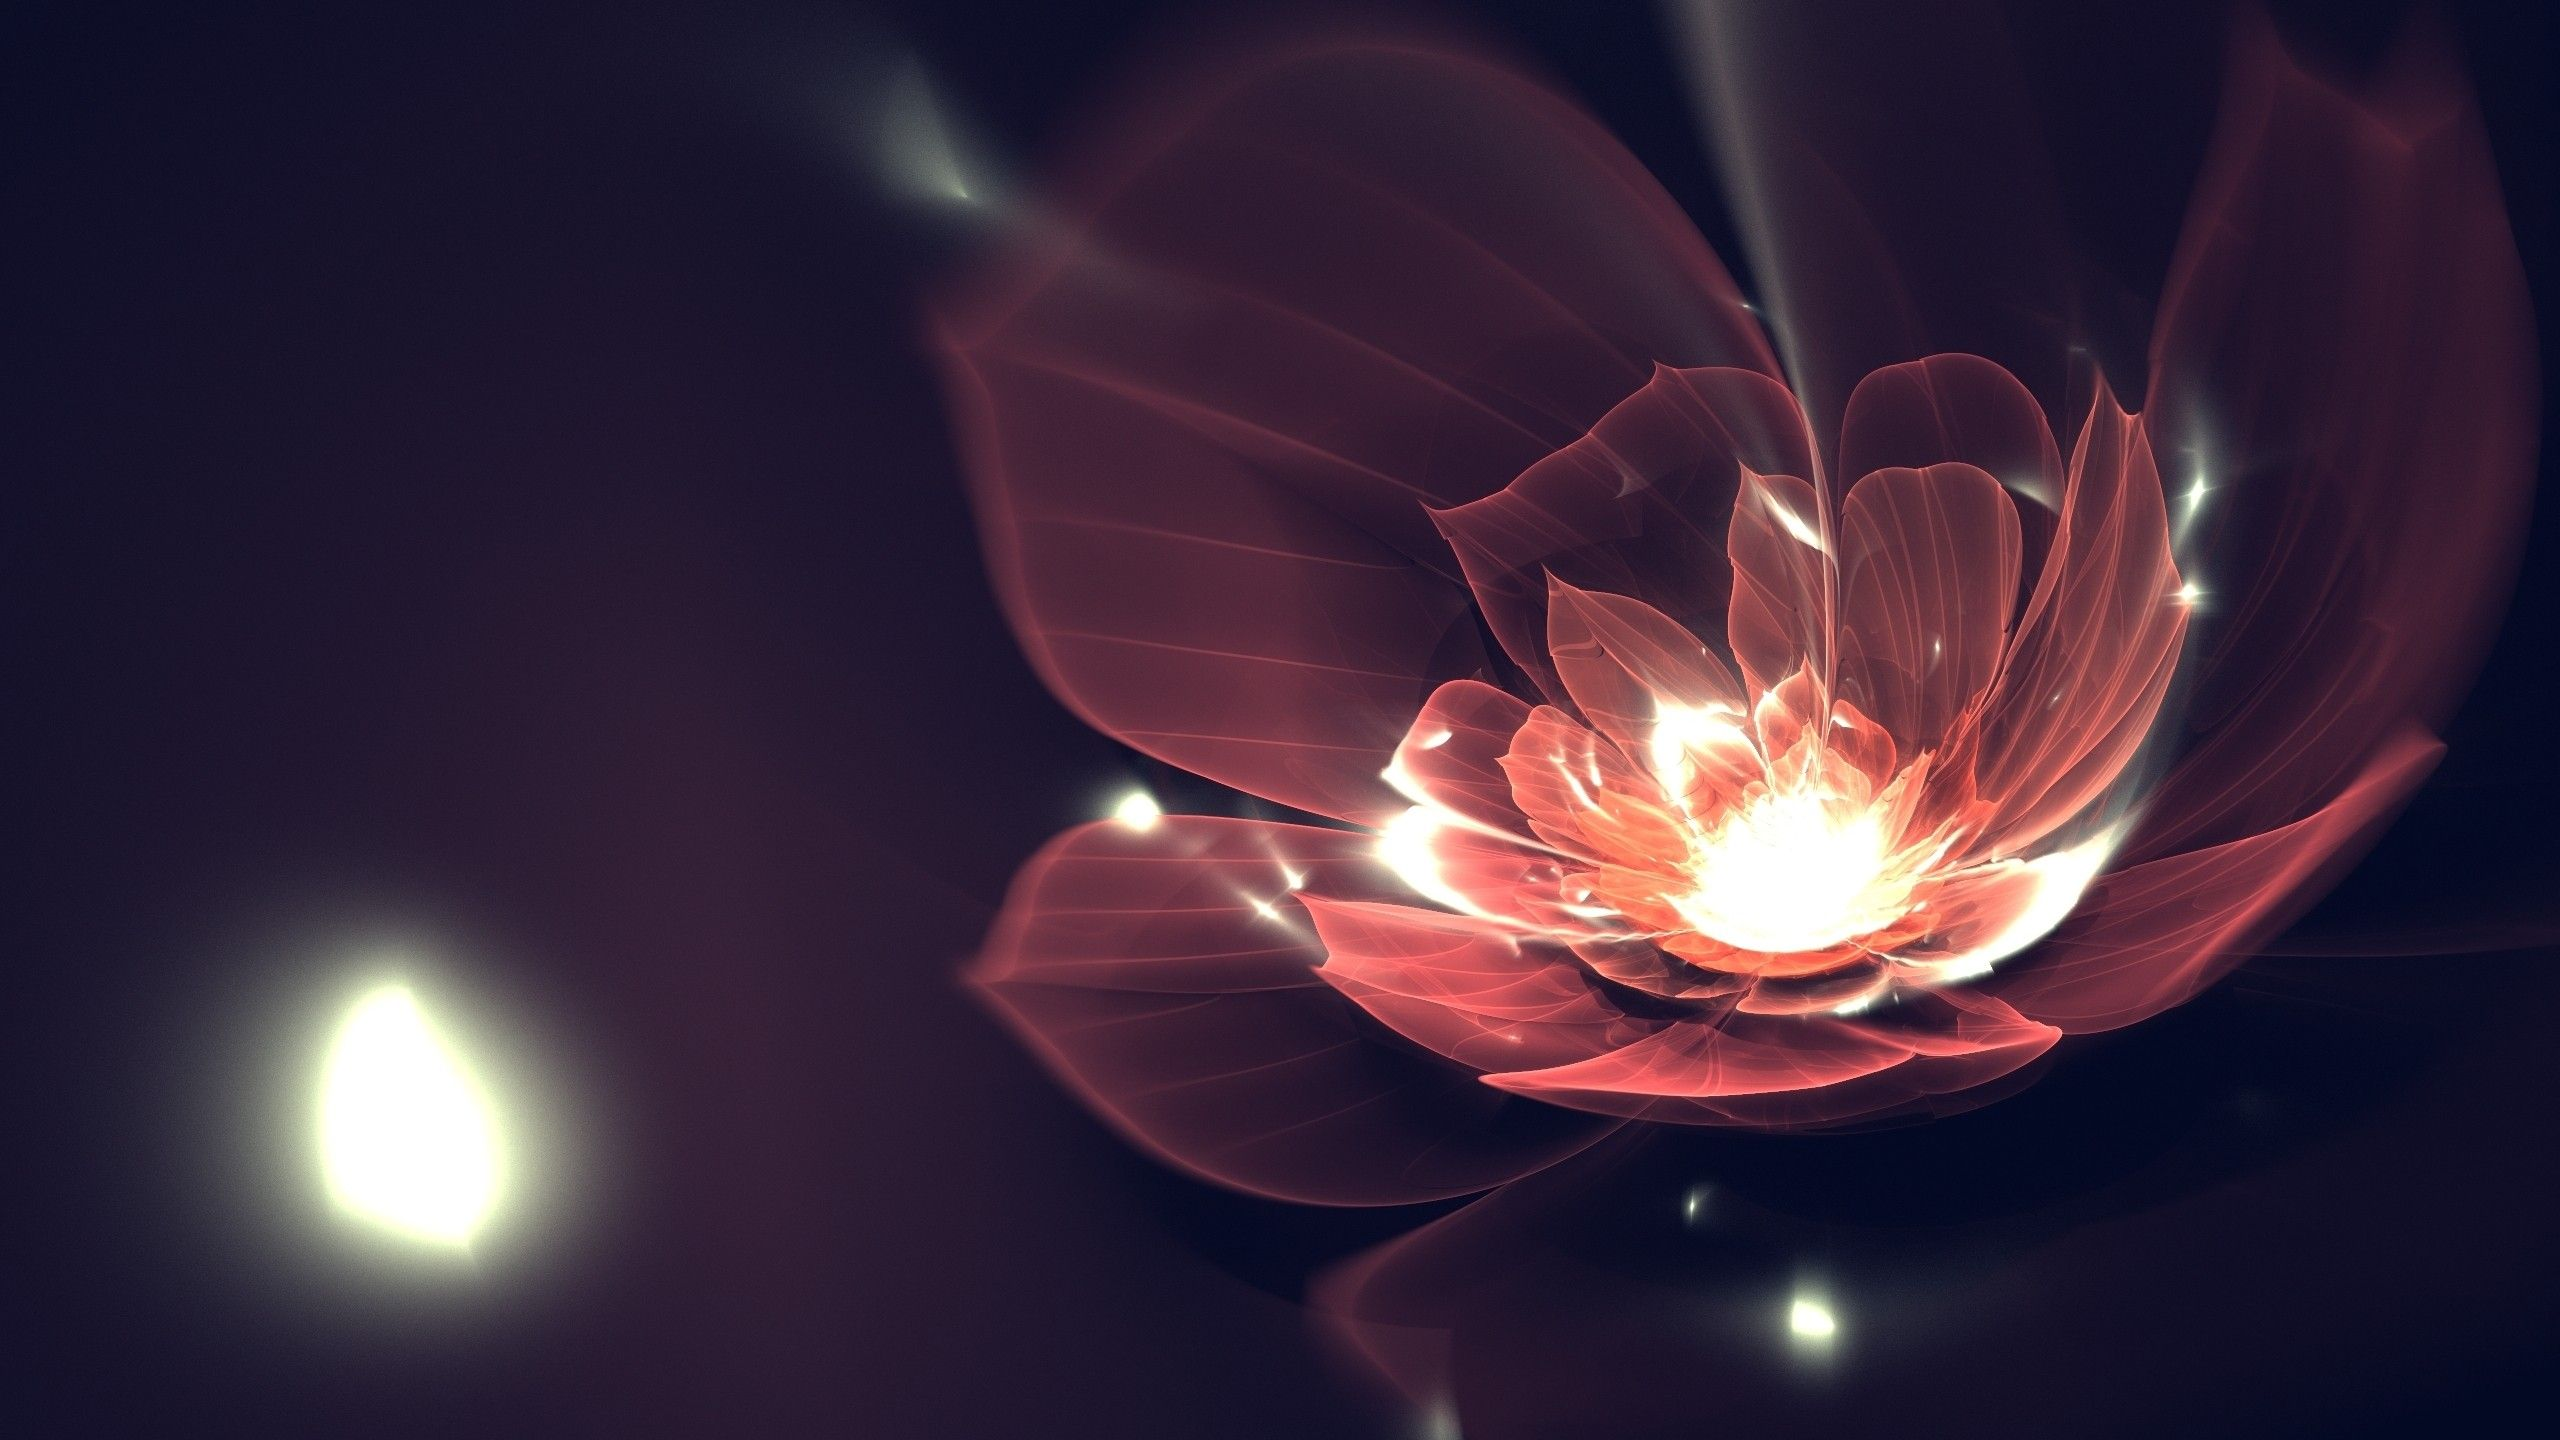 Abstract Dark Flowers Particles 2560x1440 Wallpaper Abstract